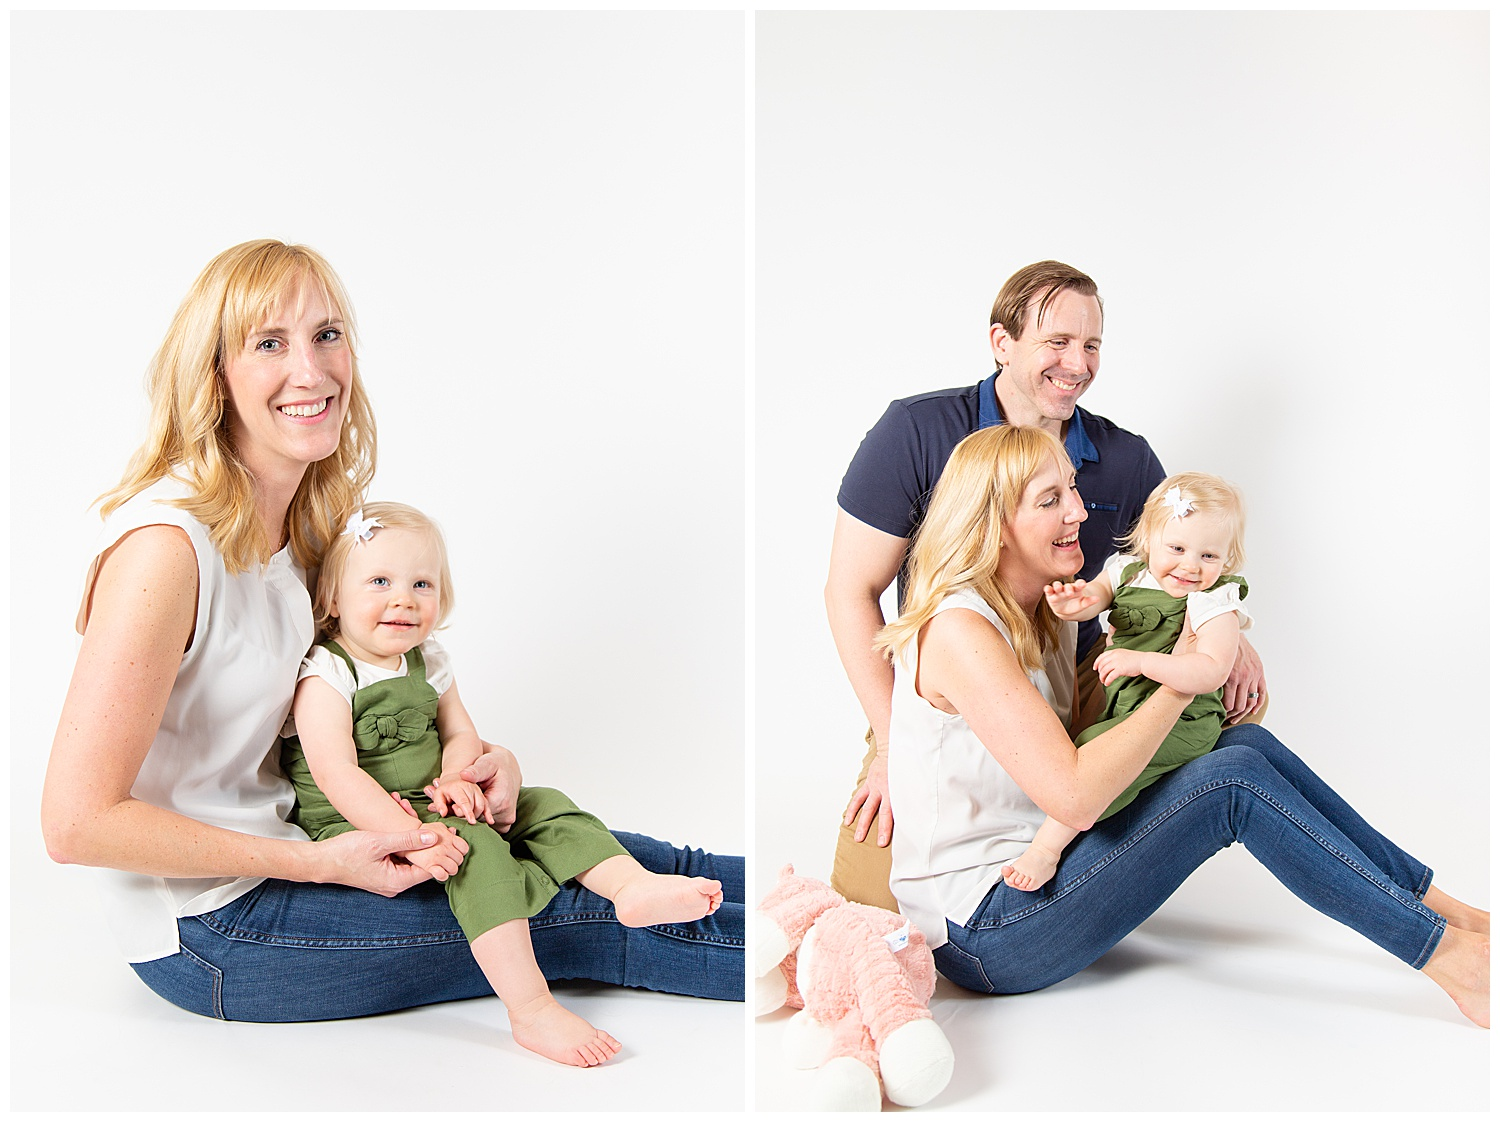 emily-belson-photography-family-session-10.jpg